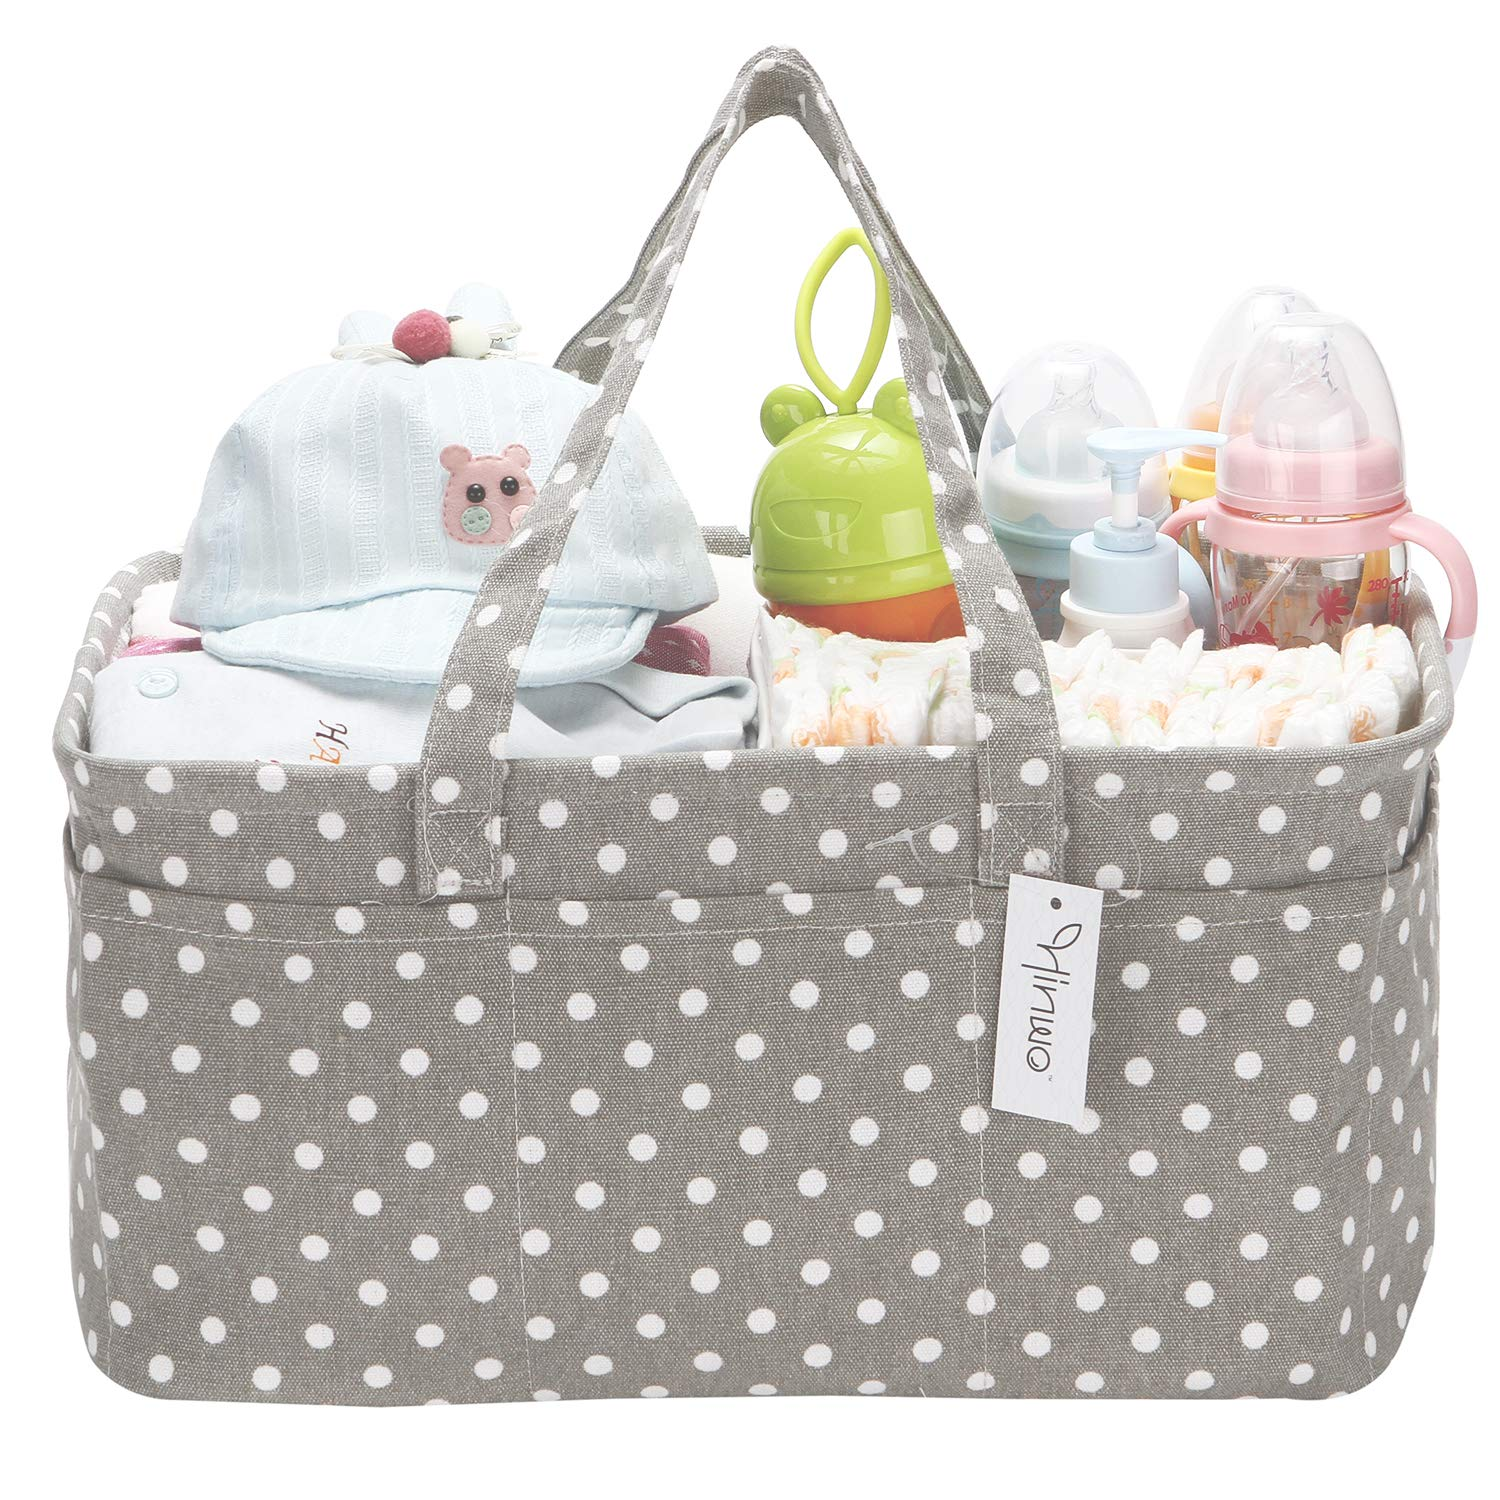 Grey Star Hinwo Baby Diaper Caddy 3-Compartment Infant Nursery Tote Storage Bin Portable Car Organizer Newborn Shower Gift Basket with Detachable Divider and 10 Invisible Pockets for Diapers /& Wipes